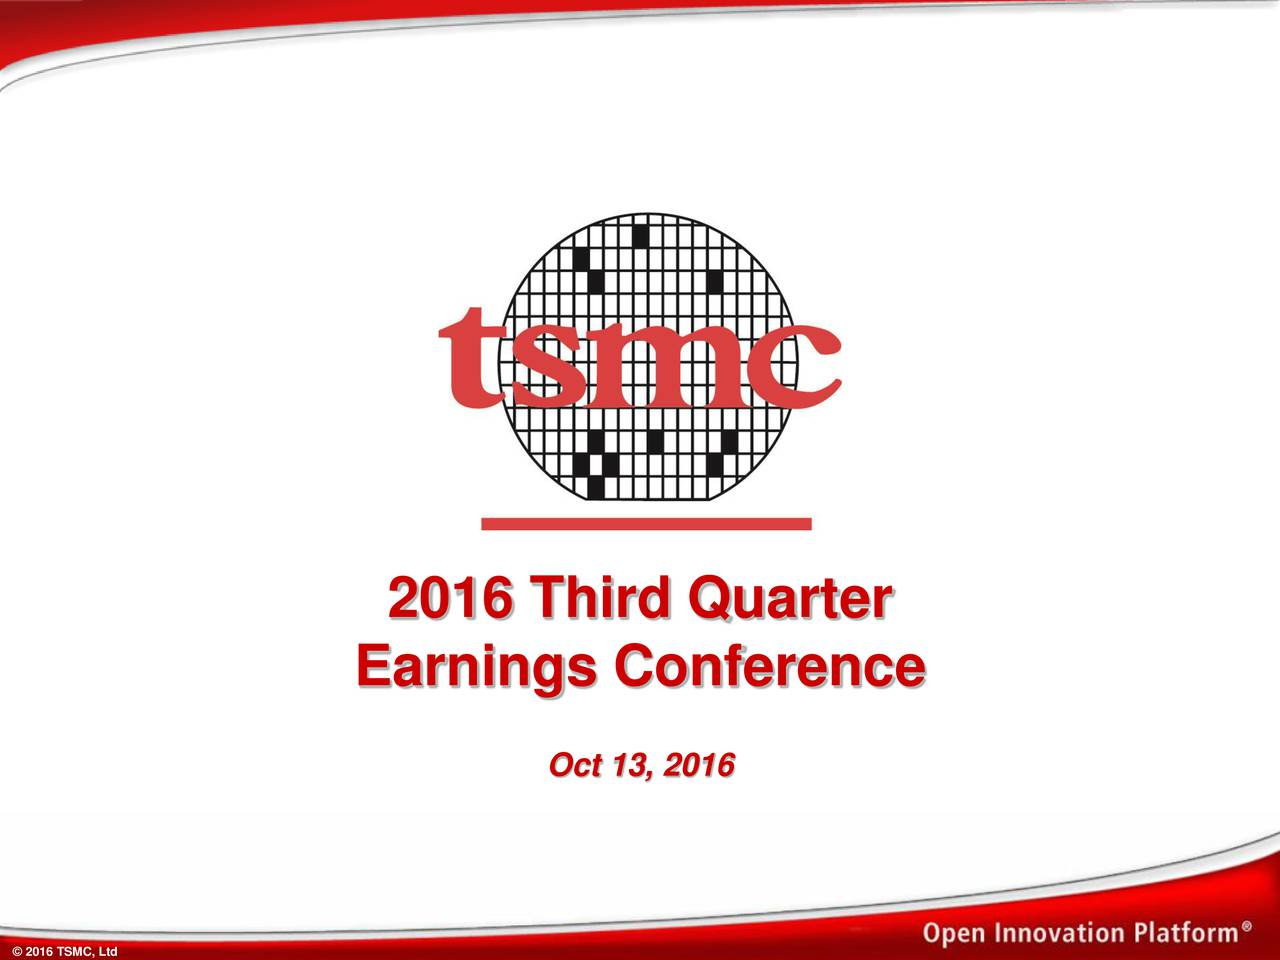 2016 Third Quarter Earnings Conference Oct 13, 2016